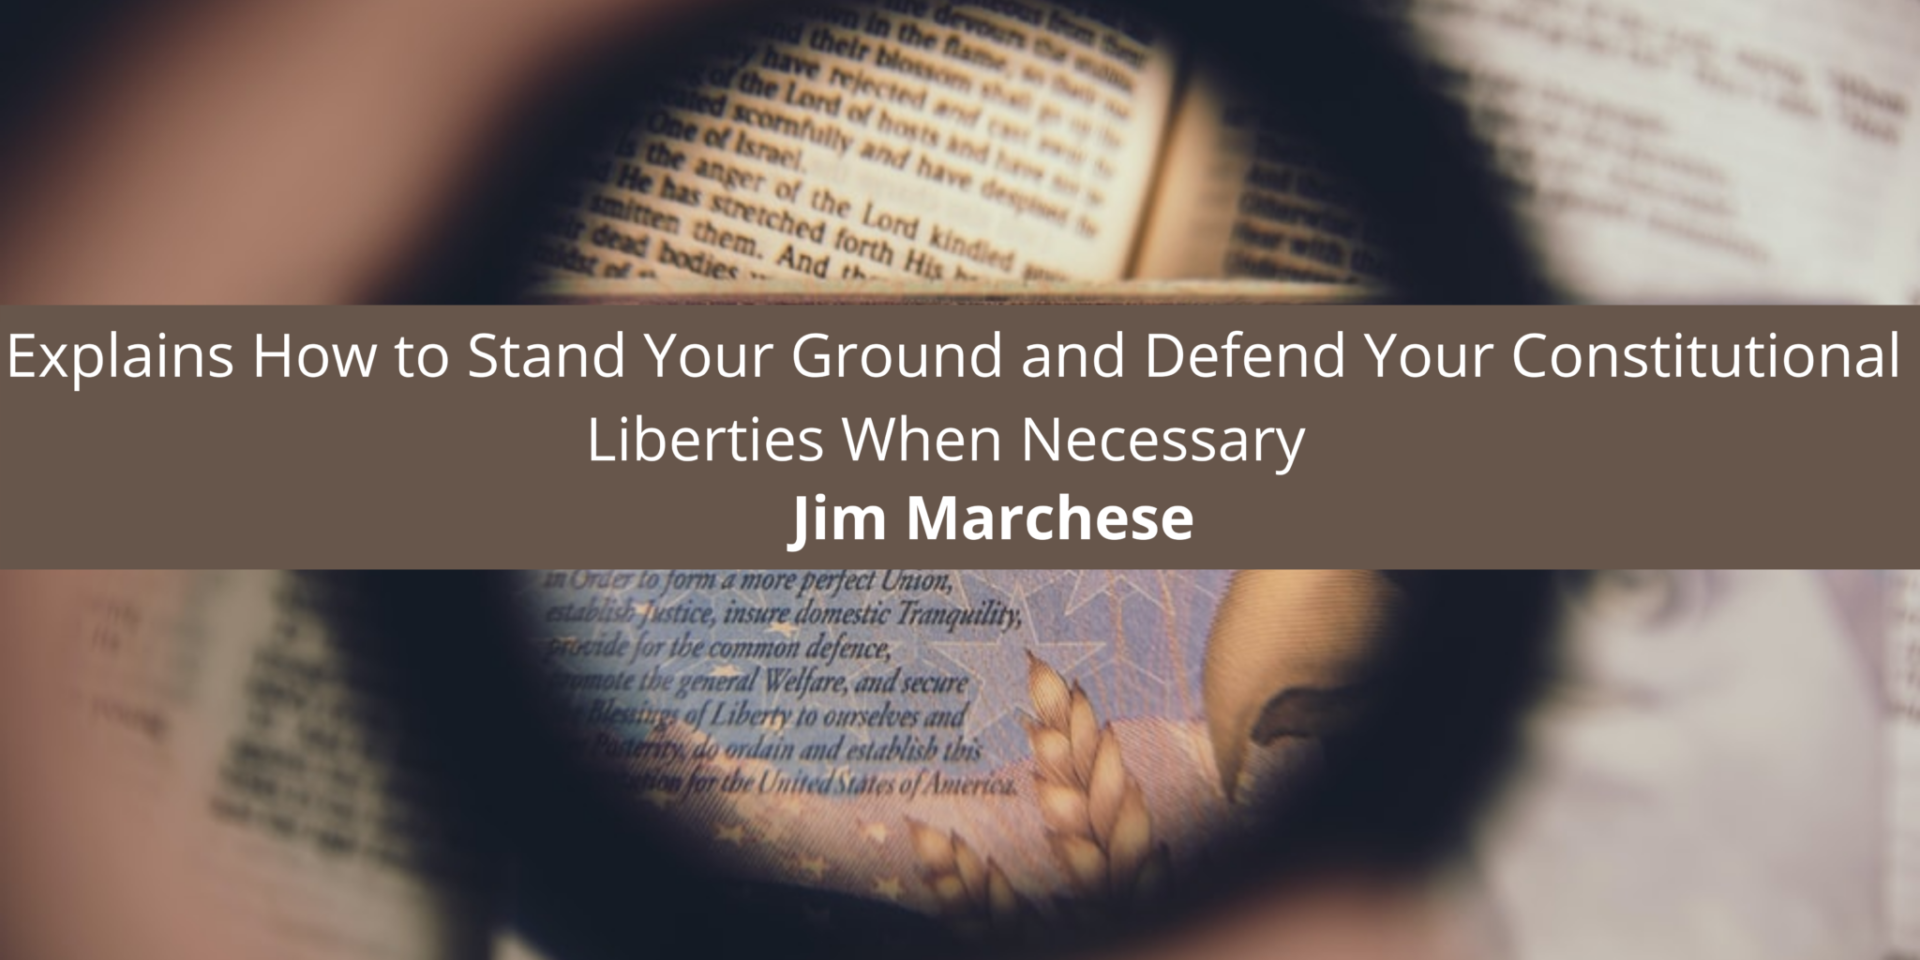 Jim Marchese Explains How to Stand Your Ground and Defend Your Constitutional Liberties When Necessary